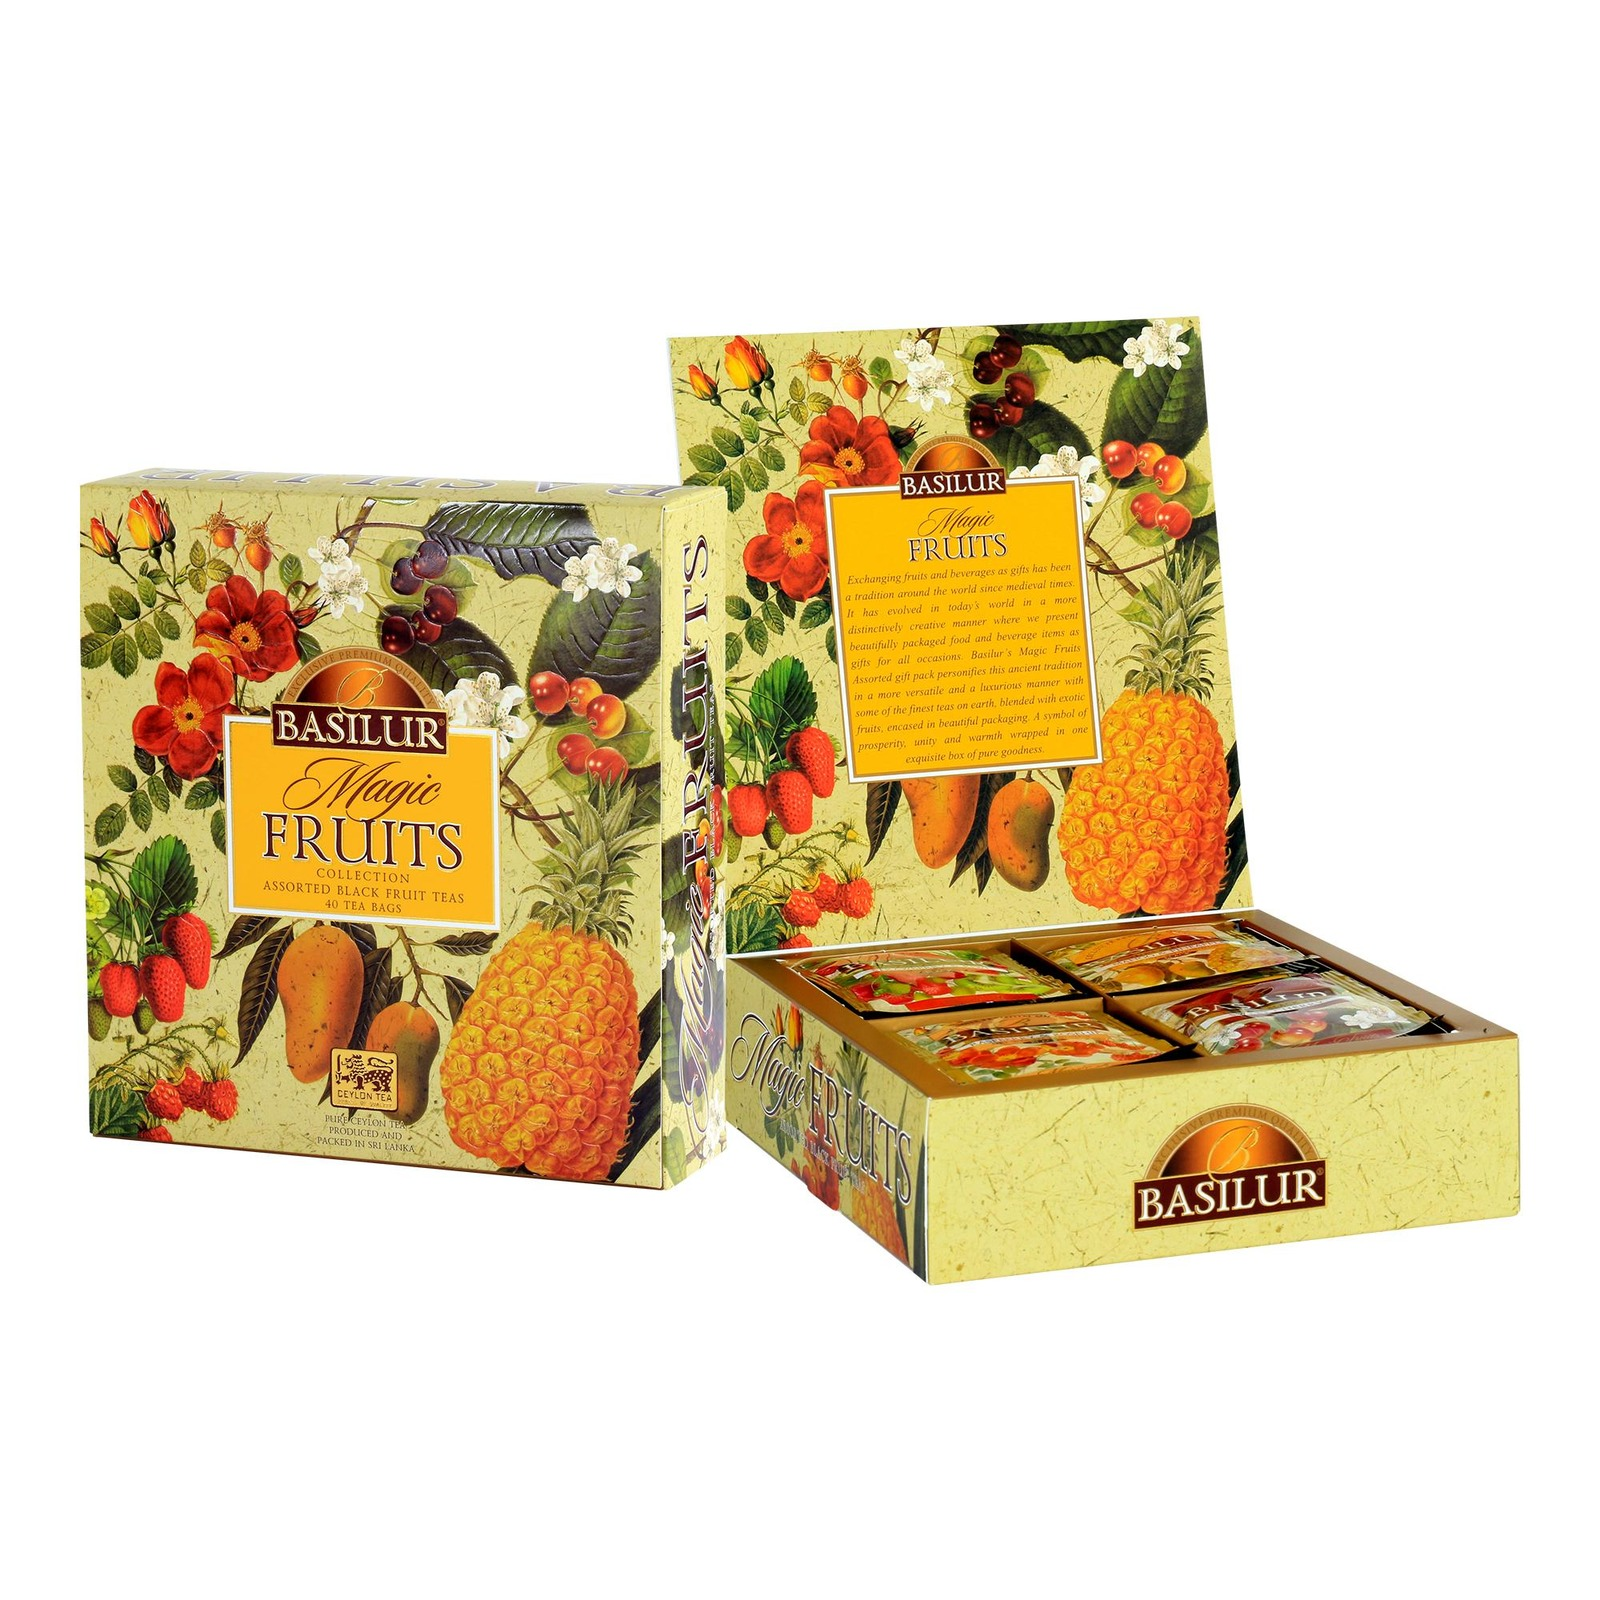 Basilur Magic Fruits Black Tea Assorted Sachets Gift Box